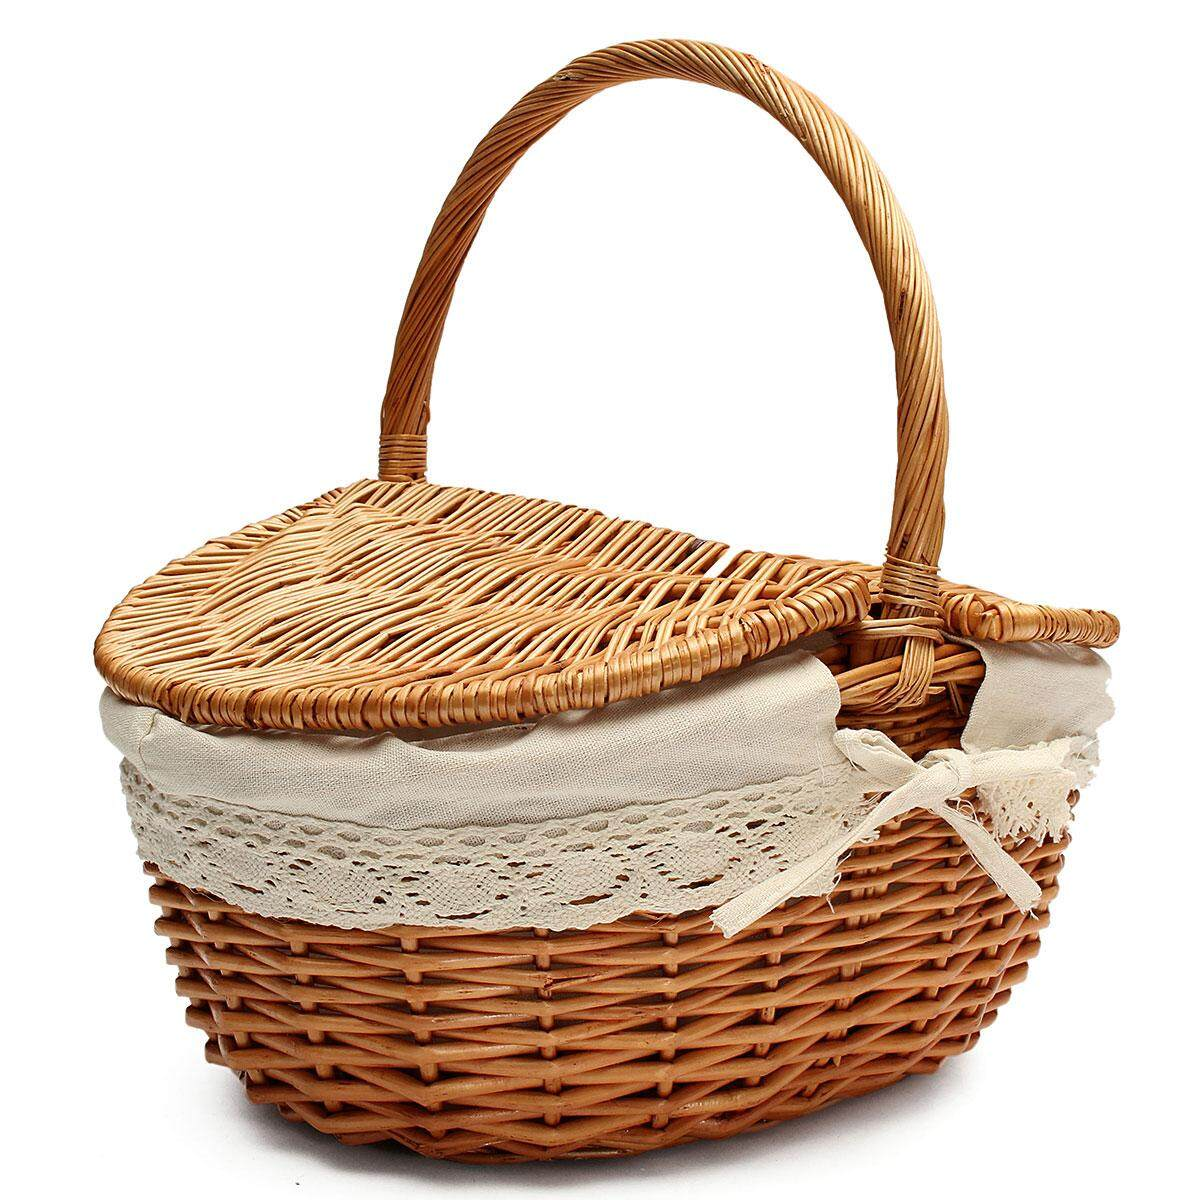 Up To 10kg Wicker Hand Picnic Storage Basket Shopping Hamper With Lid And Handle - Intl By Threegold.